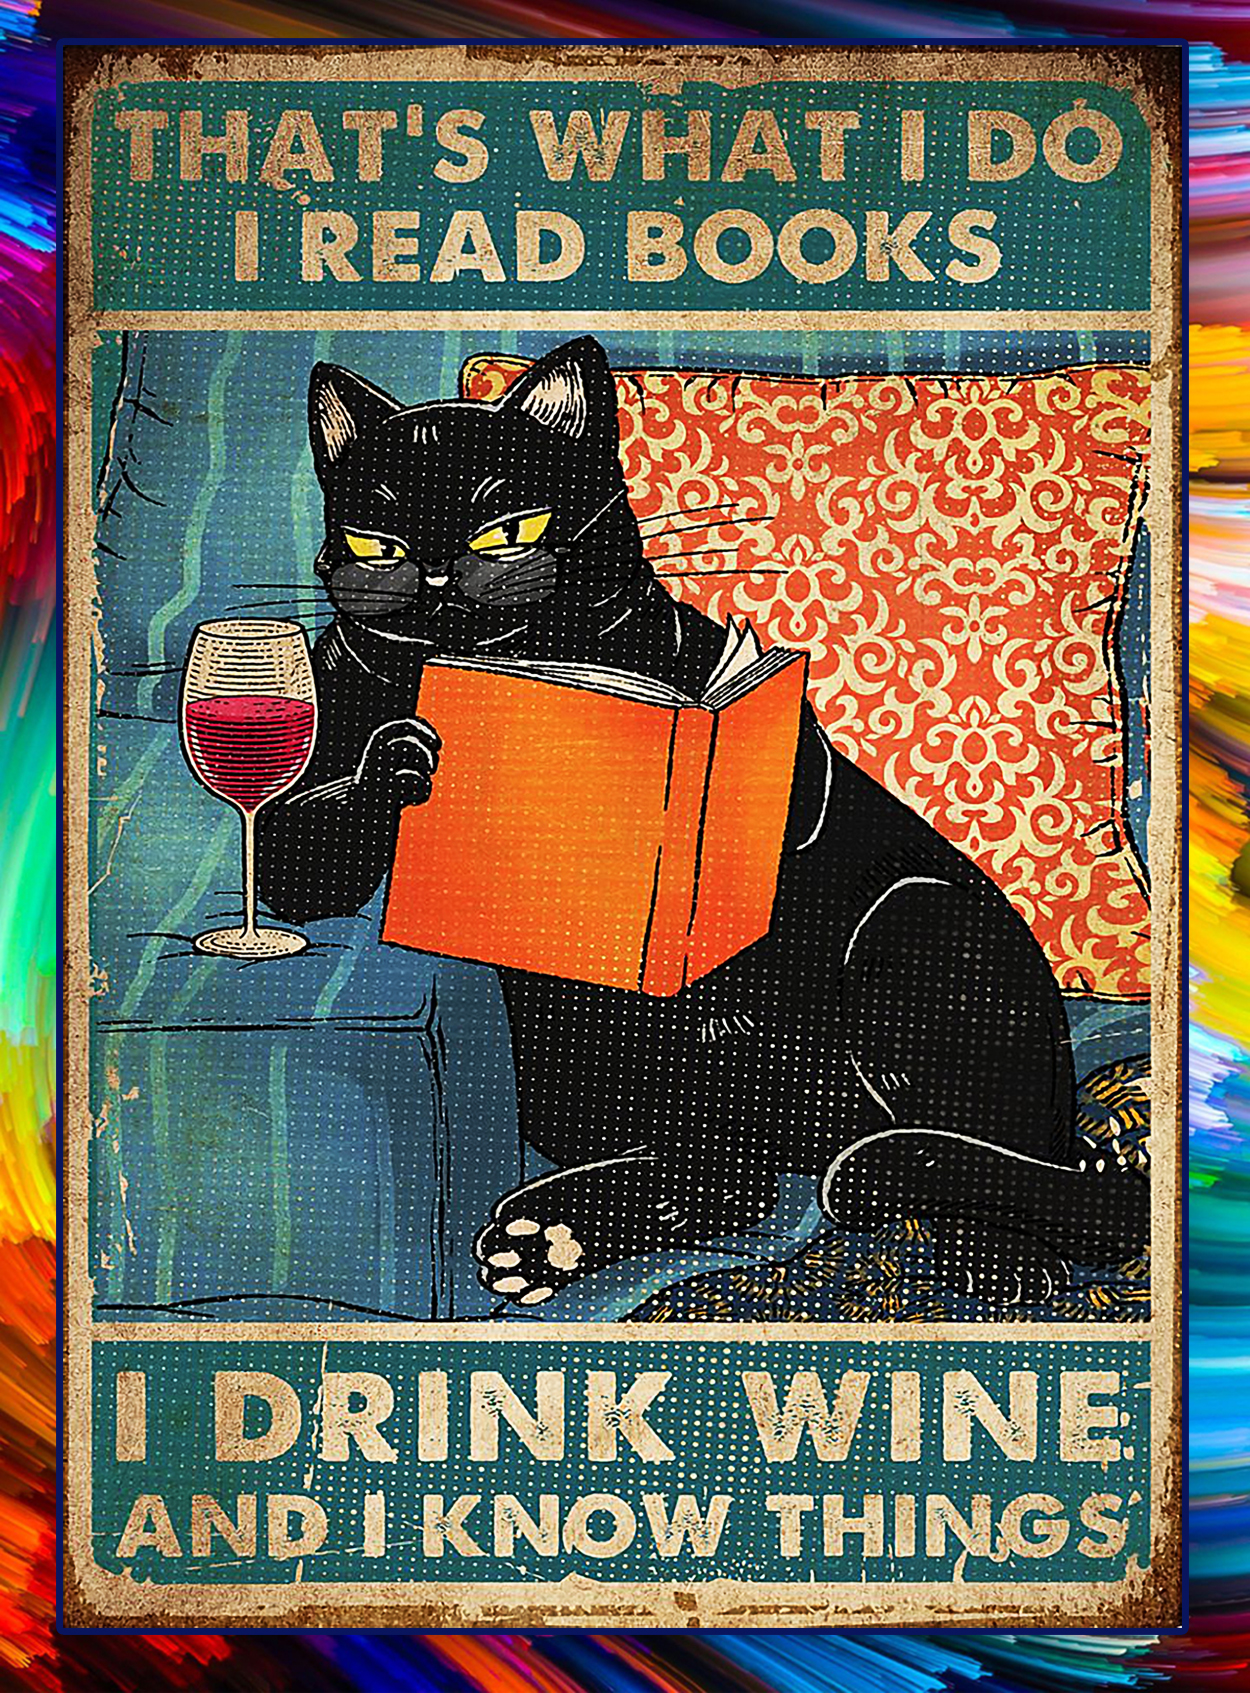 Cat that's what I do I read books I drink wine and I know things poster - A2